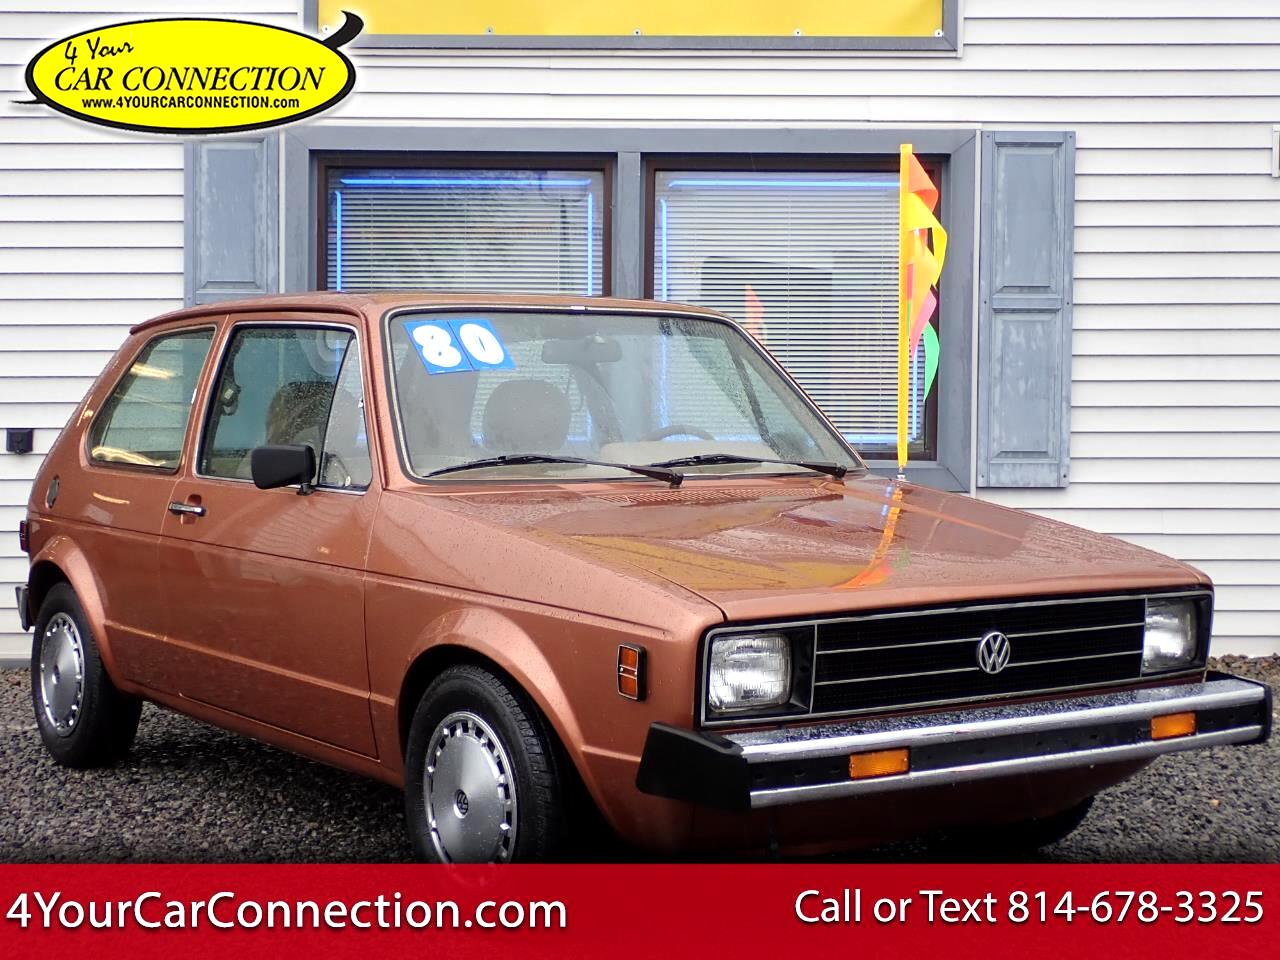 1980 Volkswagen Rabbit L